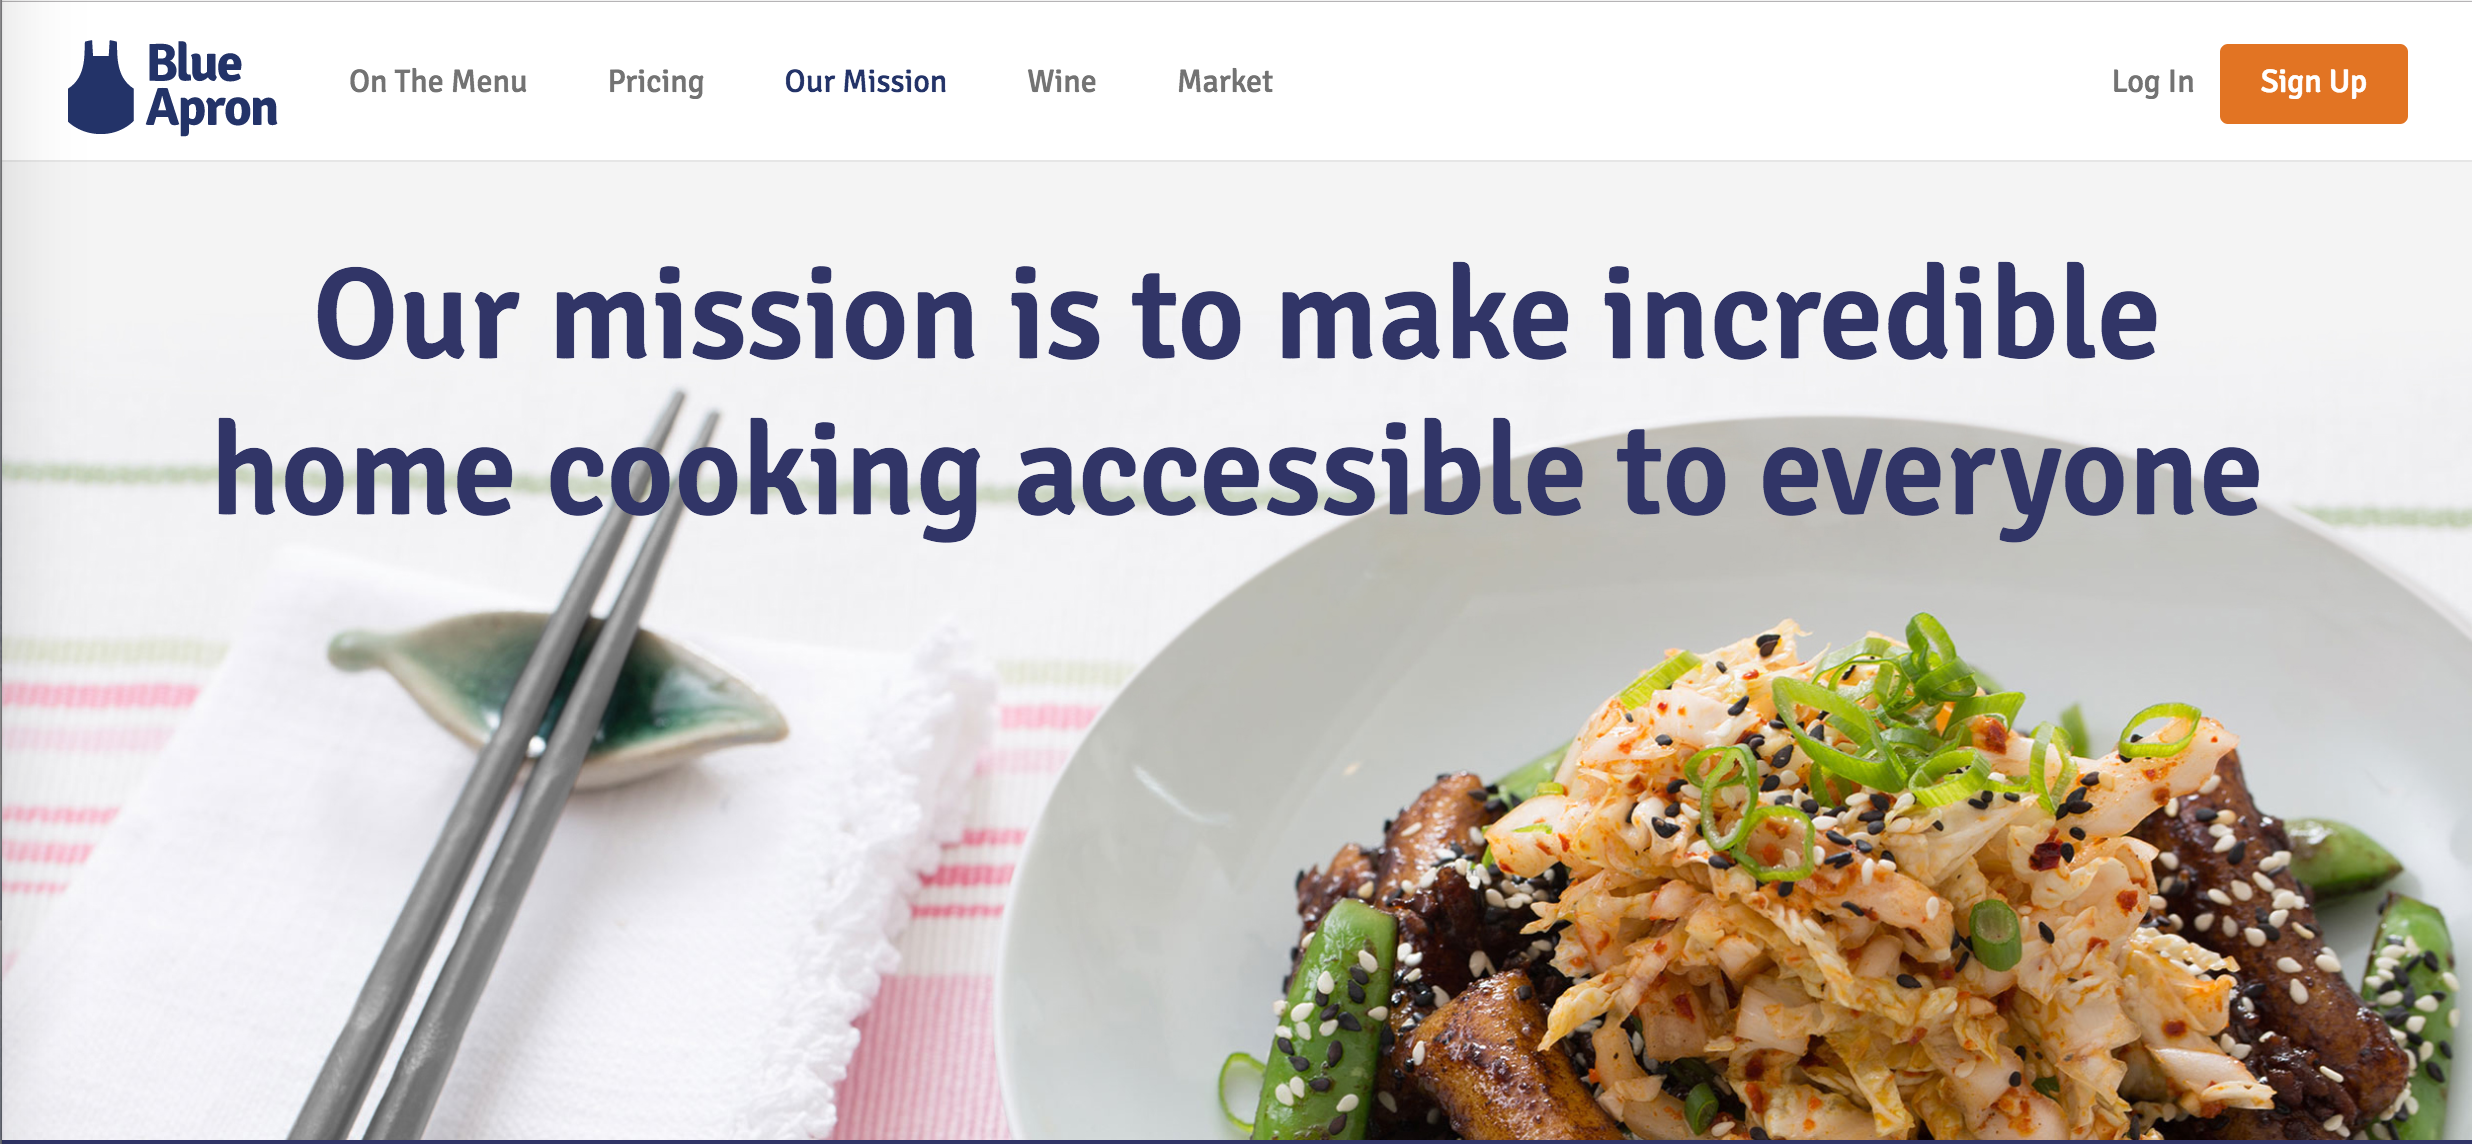 Blue apron demographics